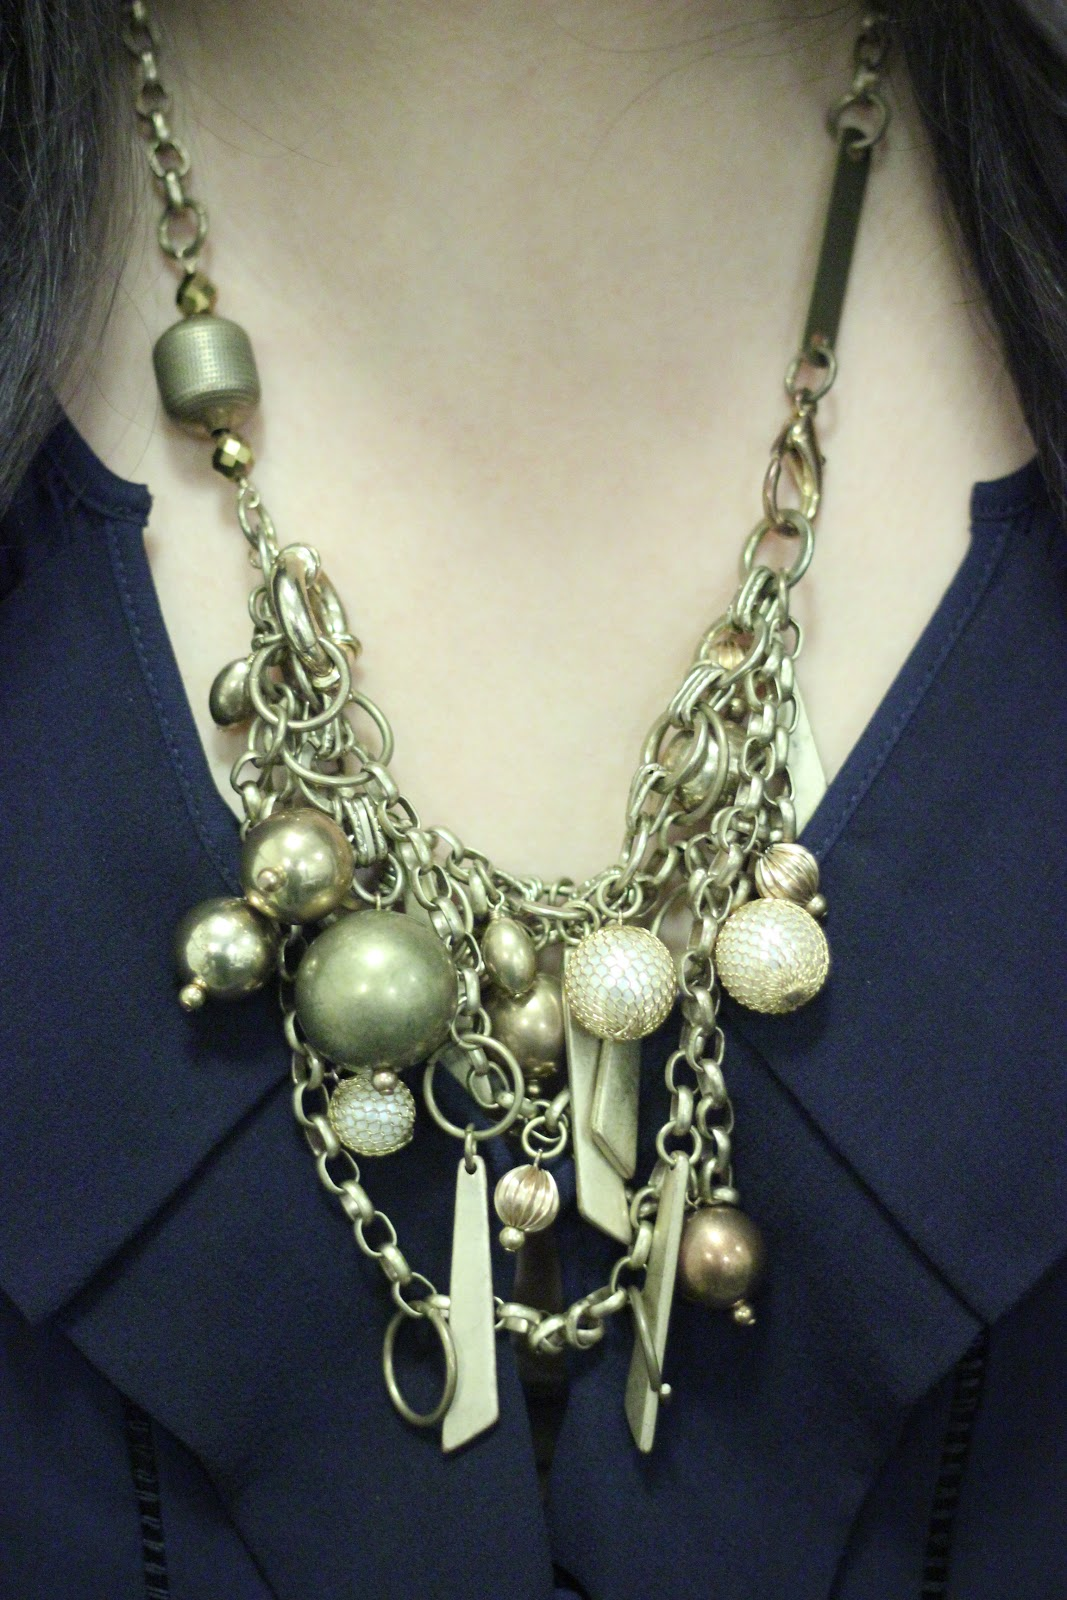 Gold Subversive for Target Baubles Necklace